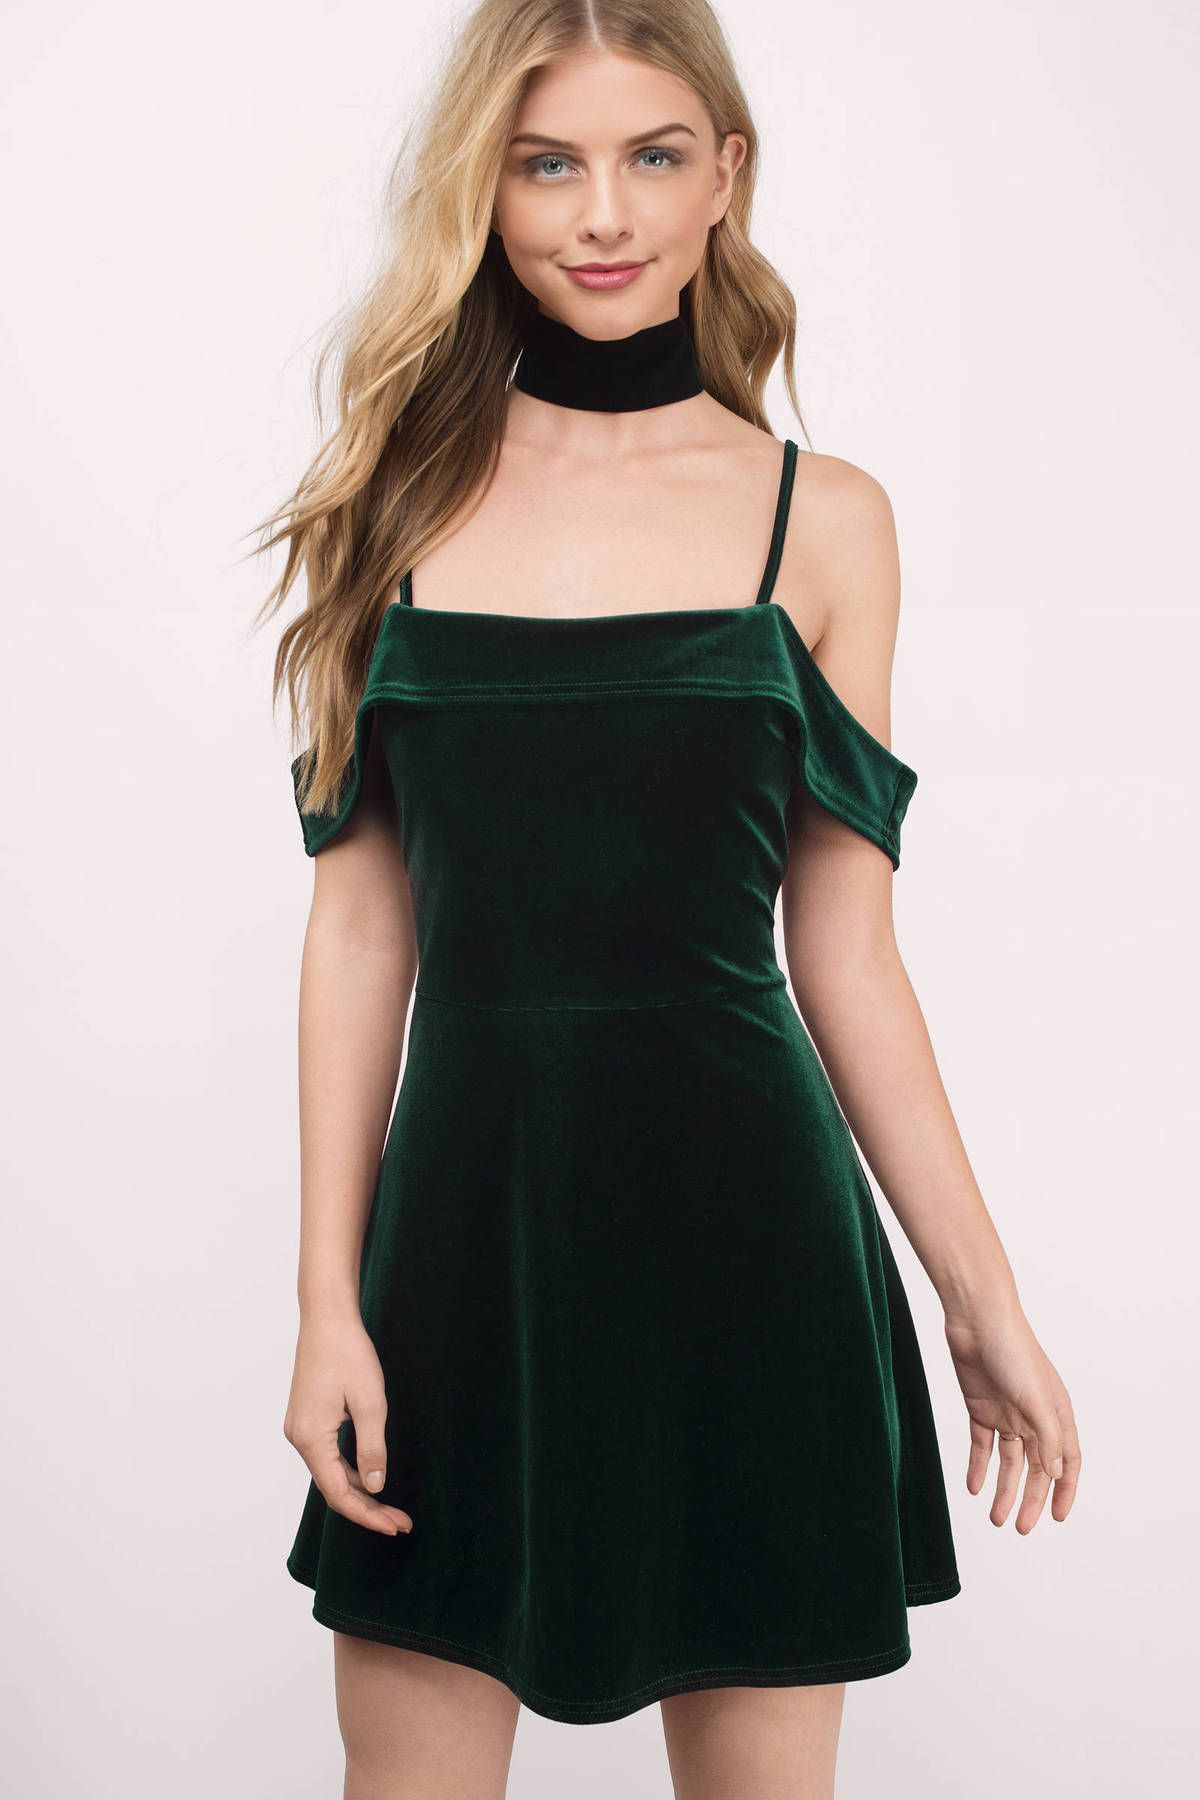 5522b0090c23 Stay real in A Fiction Green Velvet Skater Dress. Featuring the velvet and cold  shoulder